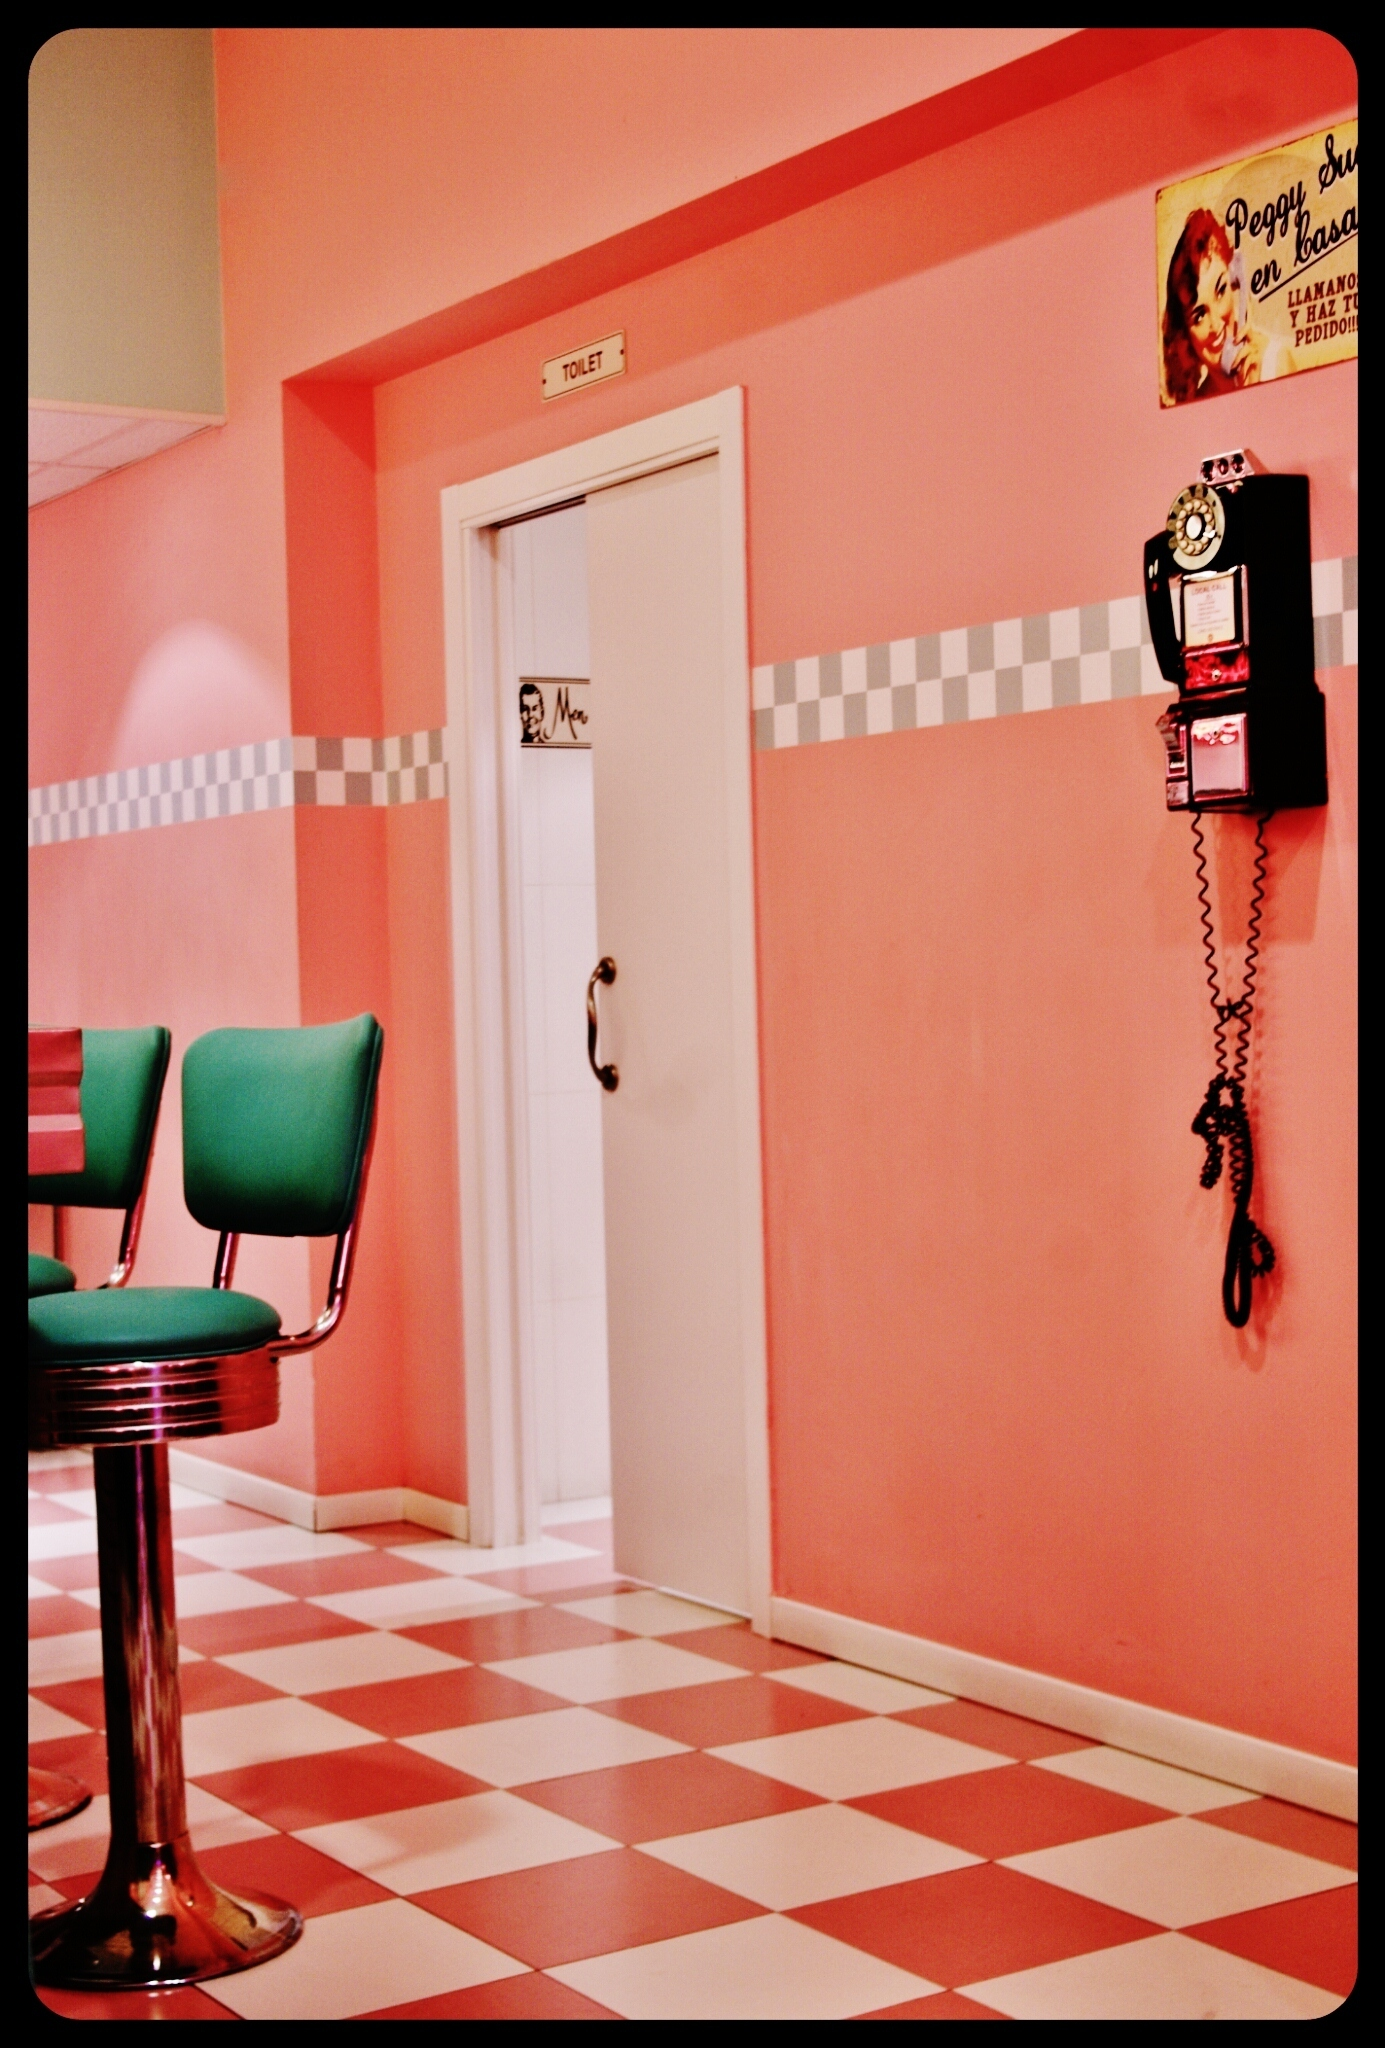 Restaurant Peggy Sue's / Barcelone 2013